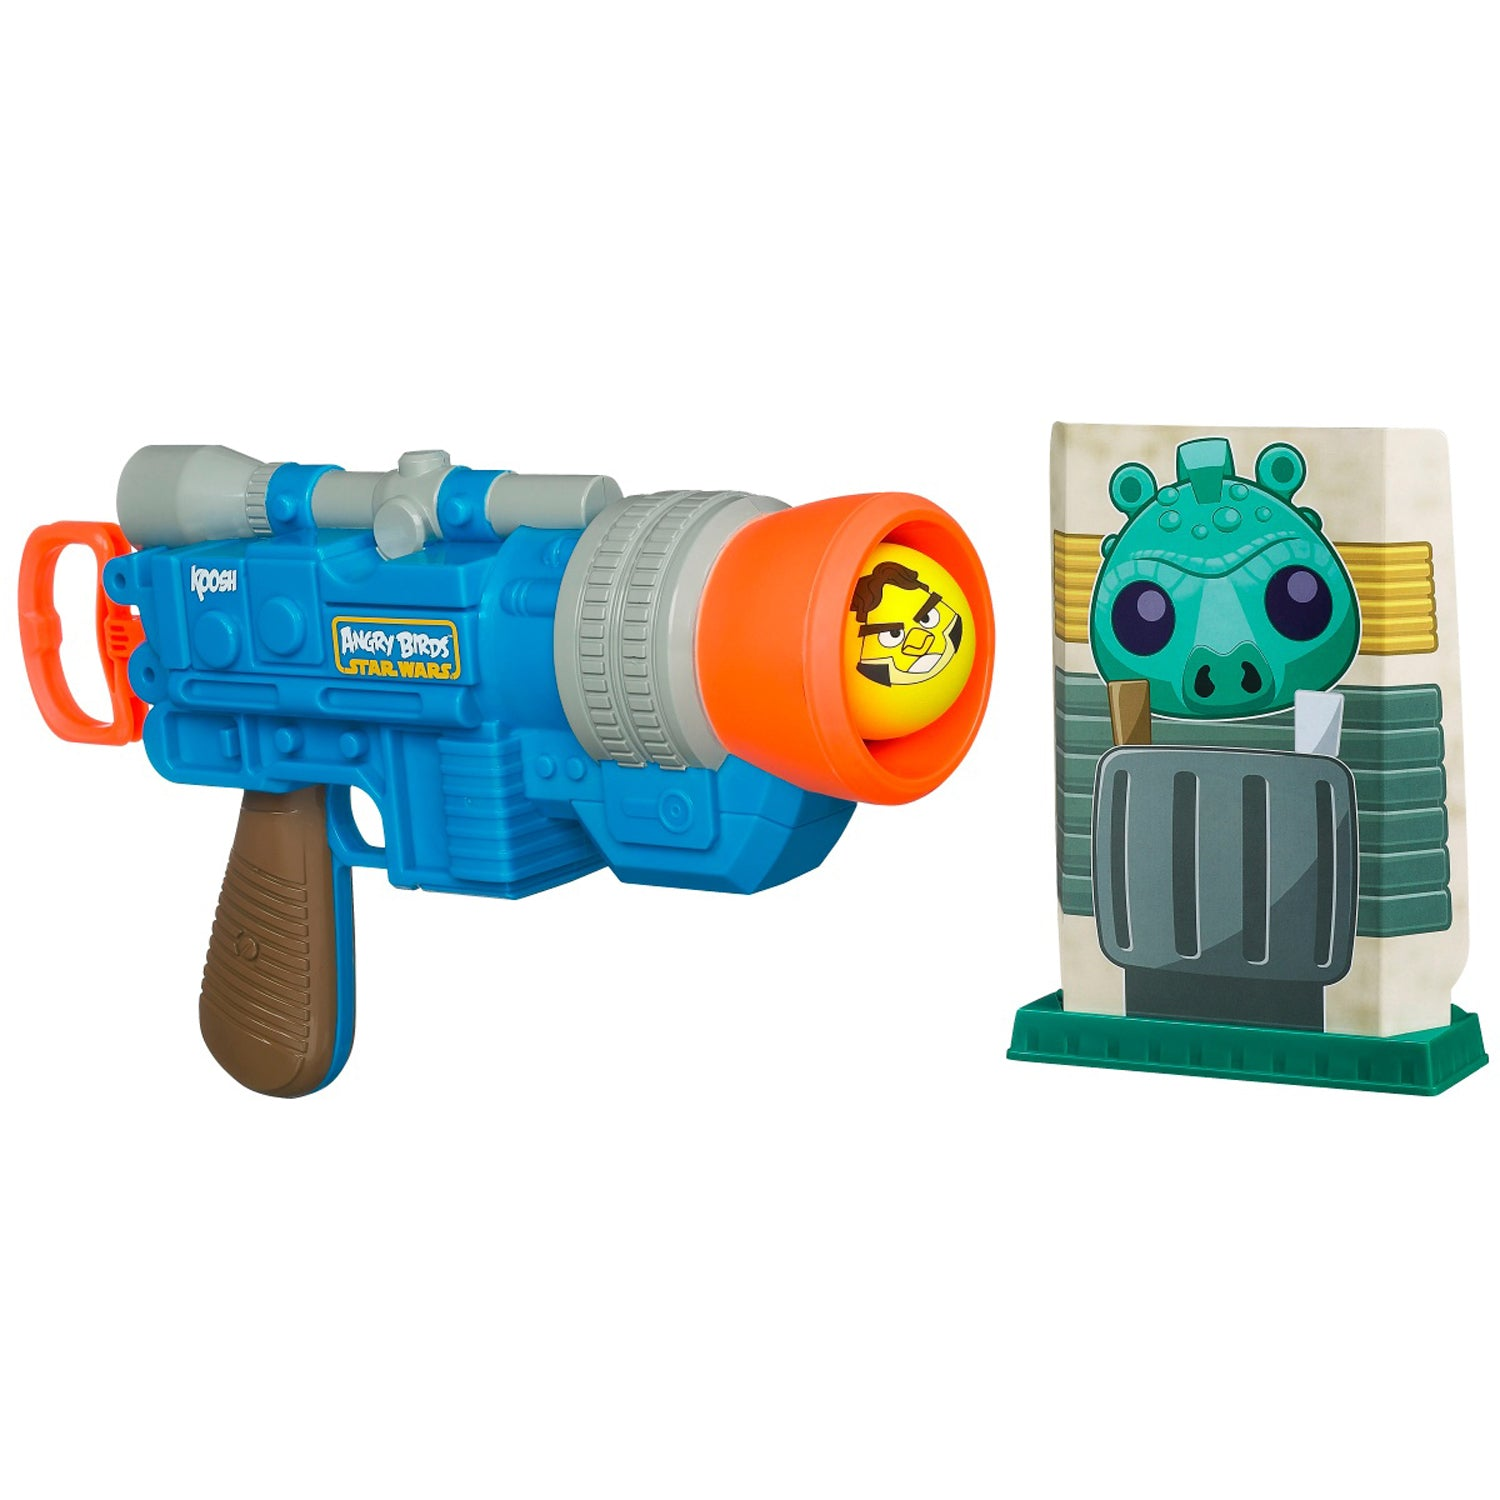 Angry Birds Toys - Star Wars Han Solo Koosh Ball Launcher